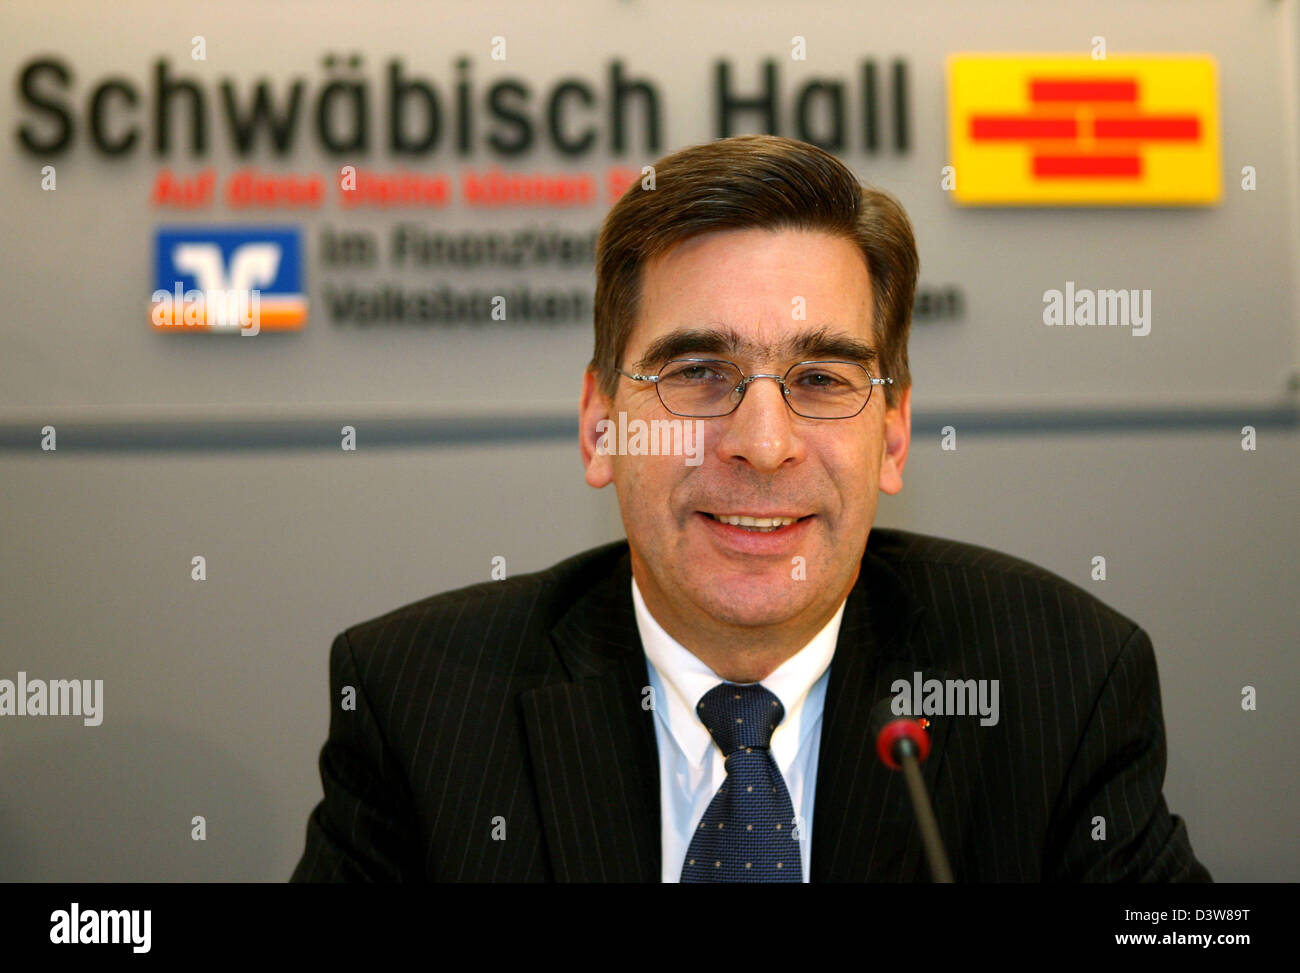 Matthias Metz, CEO of building society Schwaebisch Hall, pictured under the logo of his company at a press conference - Stock Image